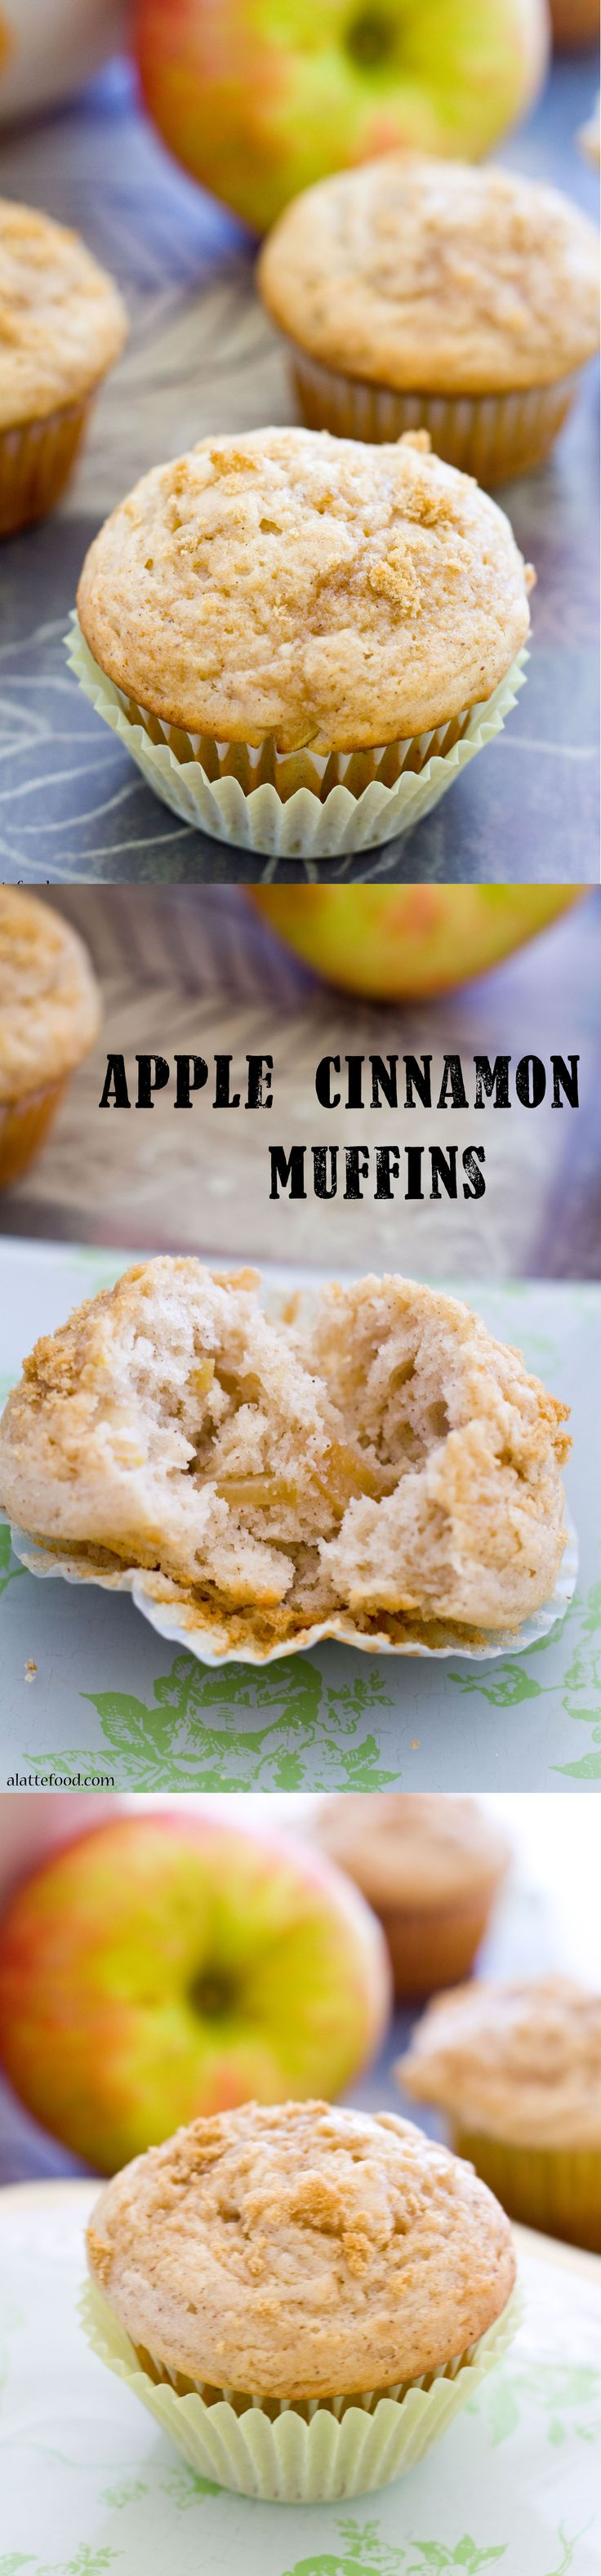 Apple Cinnamon Muffins: Cinnamon and apples make these fluffy muffins irresistible!